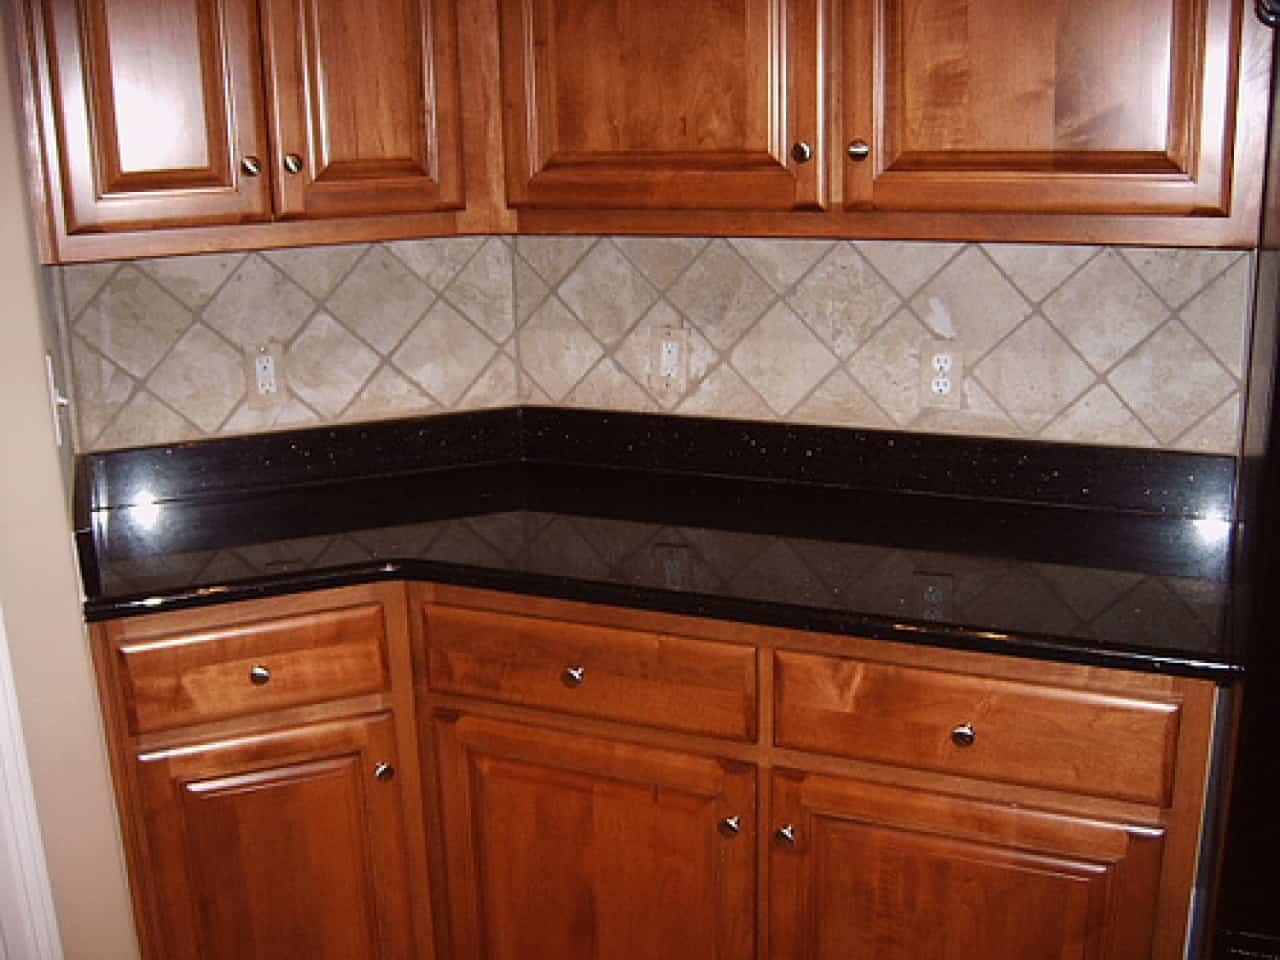 kitchen tile designs rubbermaid trash can wall tiles and more pictures ideas contemporary design 1